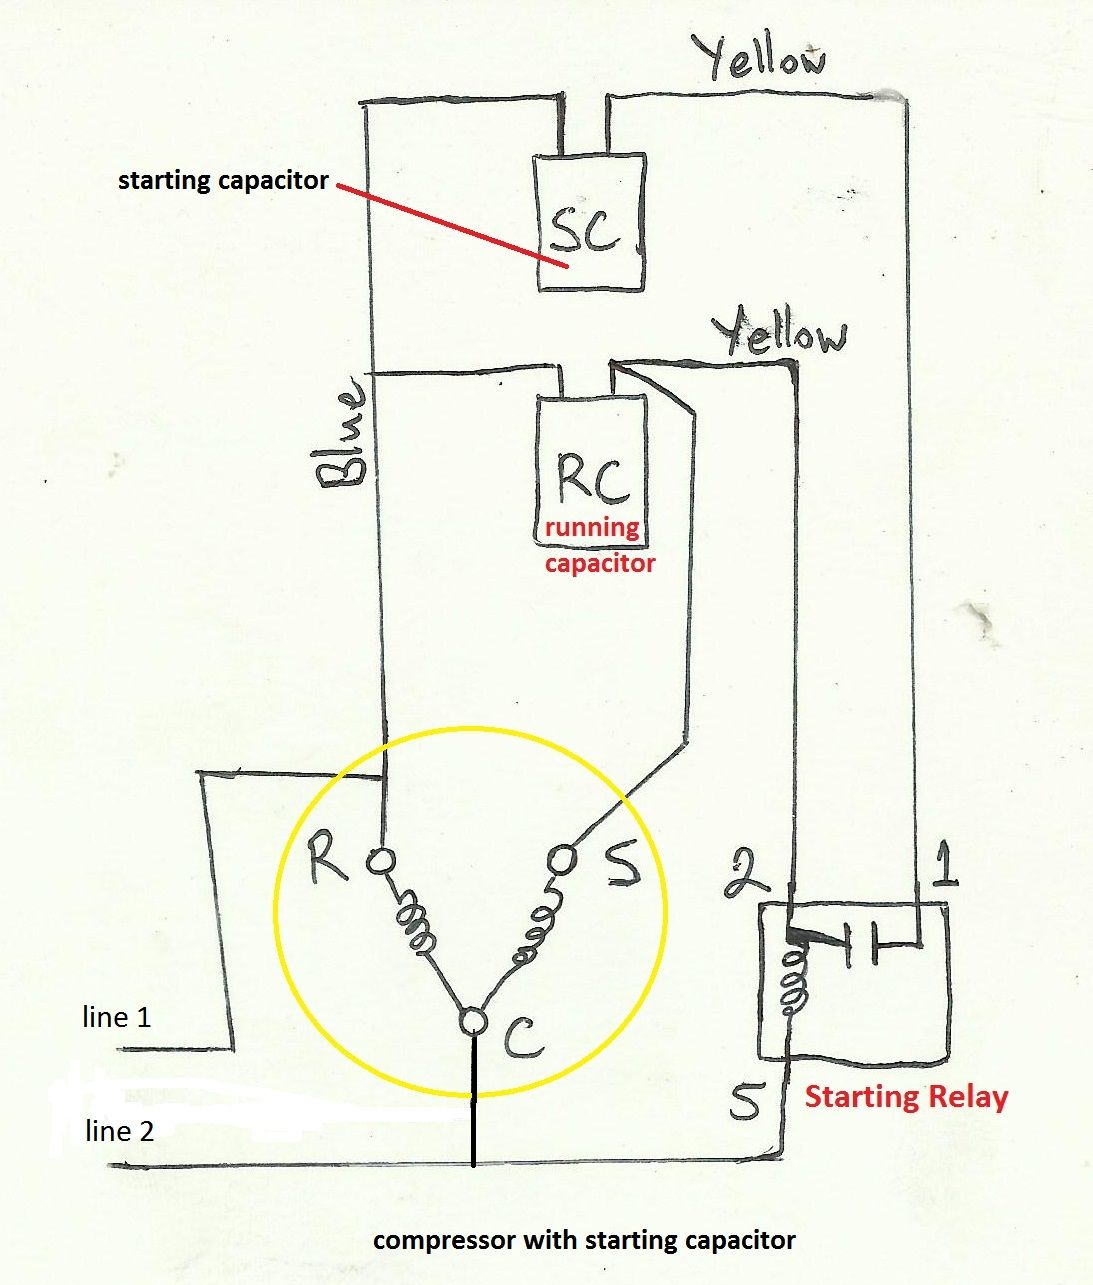 air compressor capacitor wiring diagram before you call a ac repair rh pinterest com wiring diagram for a single phase compressor wiring diagram for a refrigerator compressor